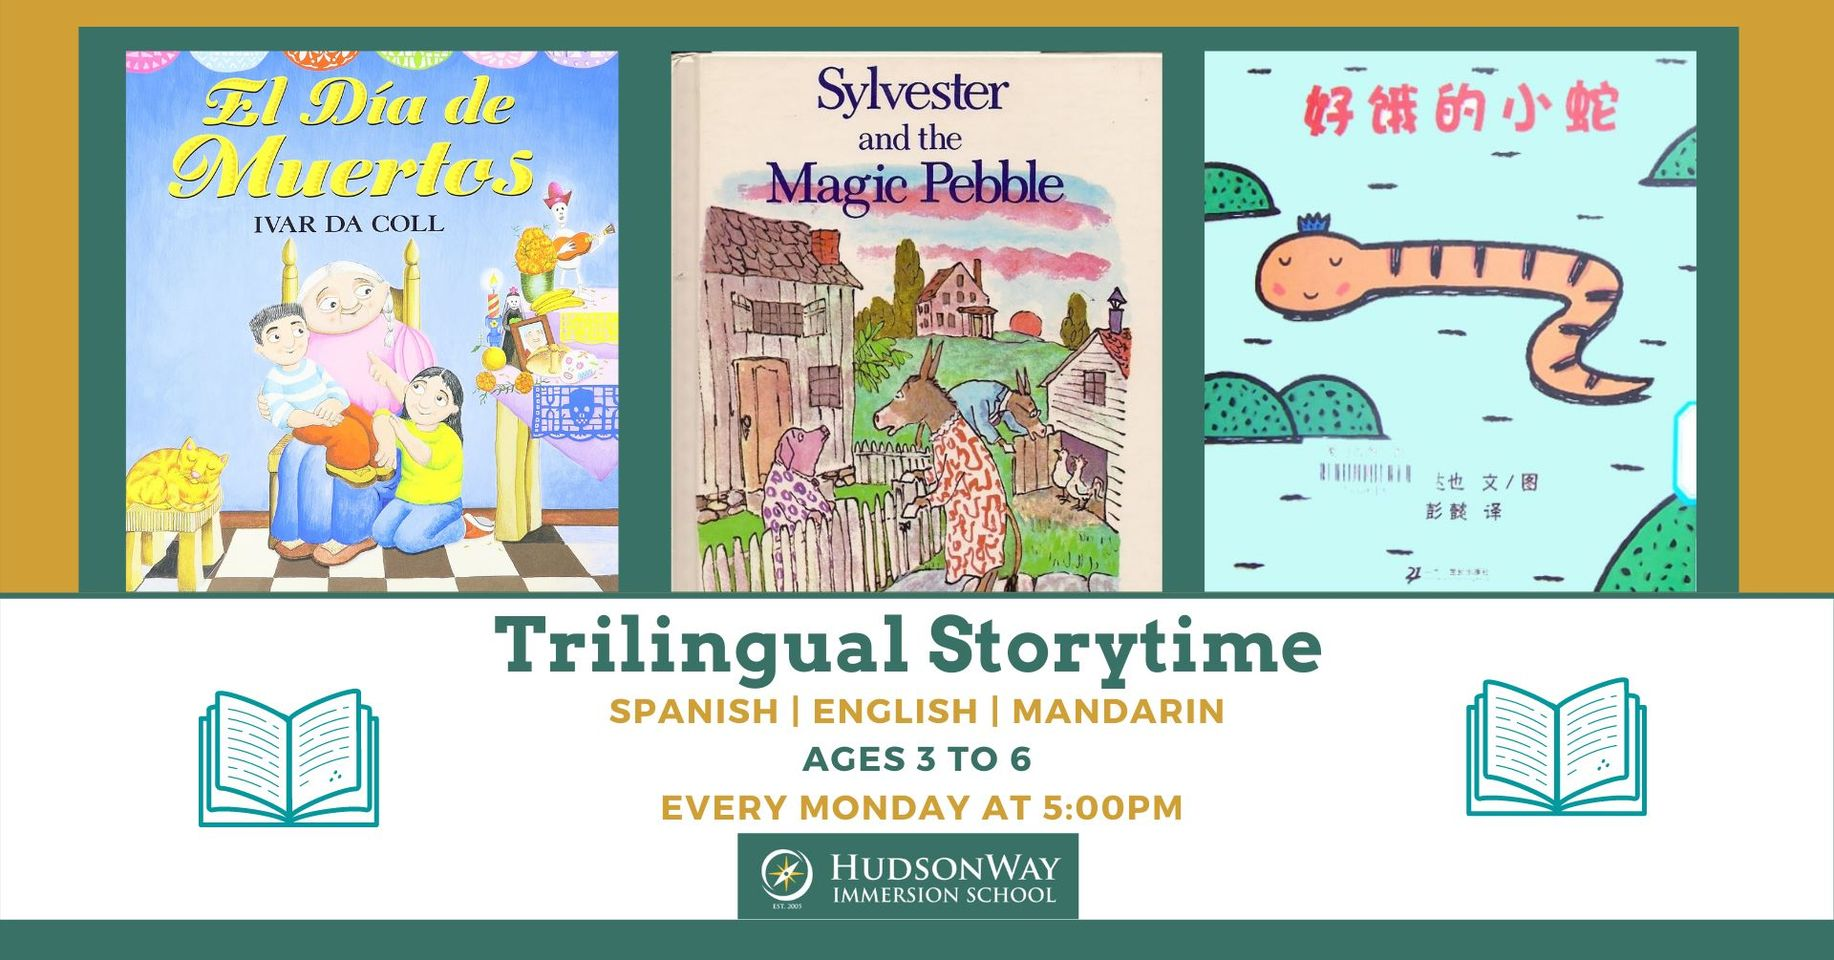 ONLINE Trilingual Storytime Mandarin and Spanish at HudsonWay Immersion School